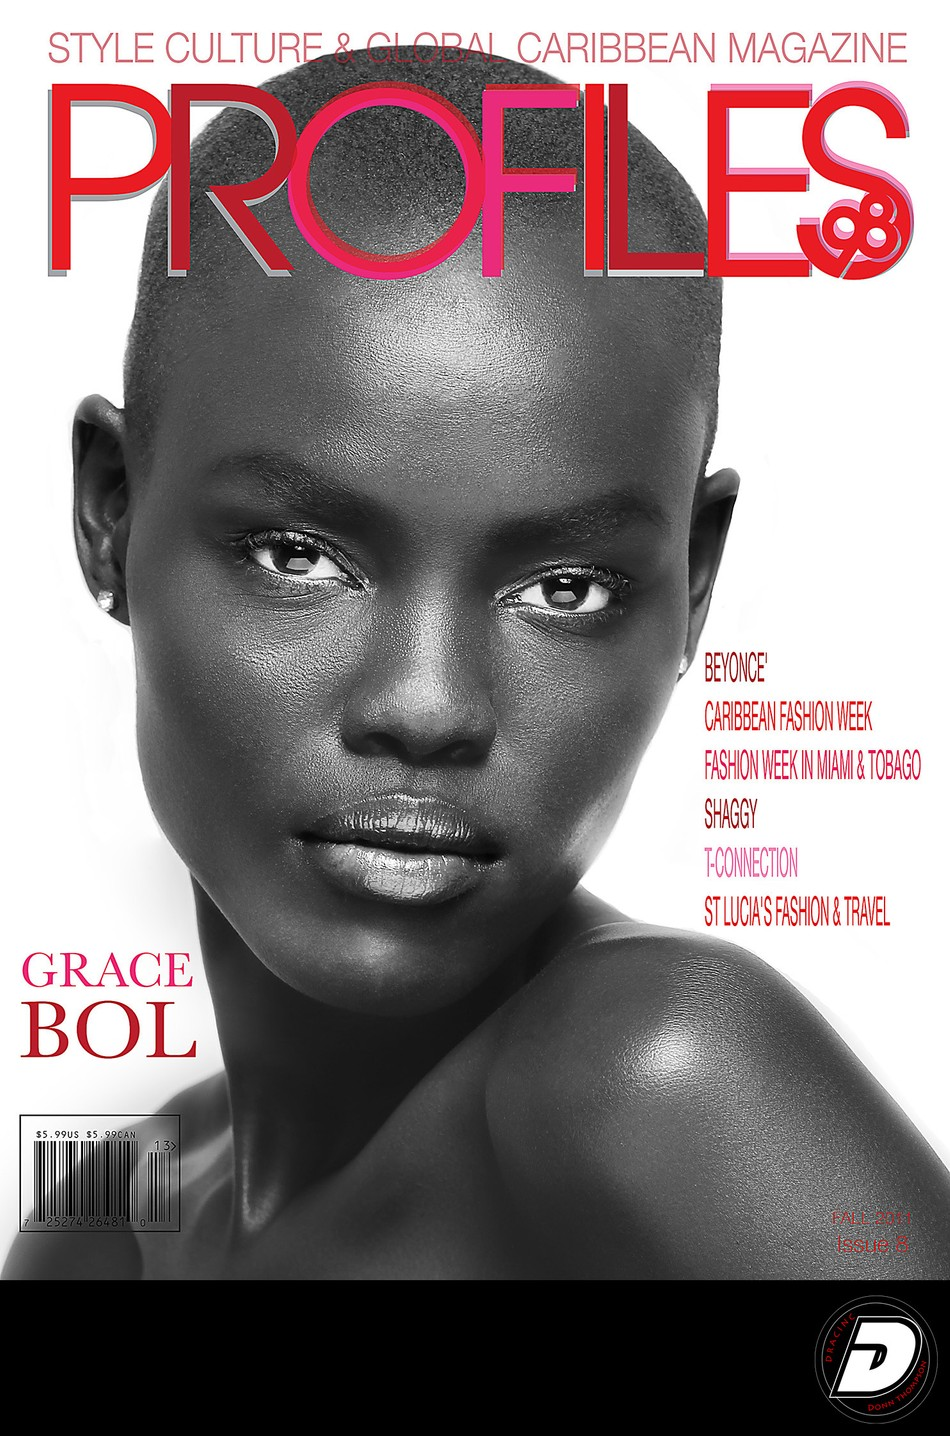 Grace Bol Profiles98 Cover #8